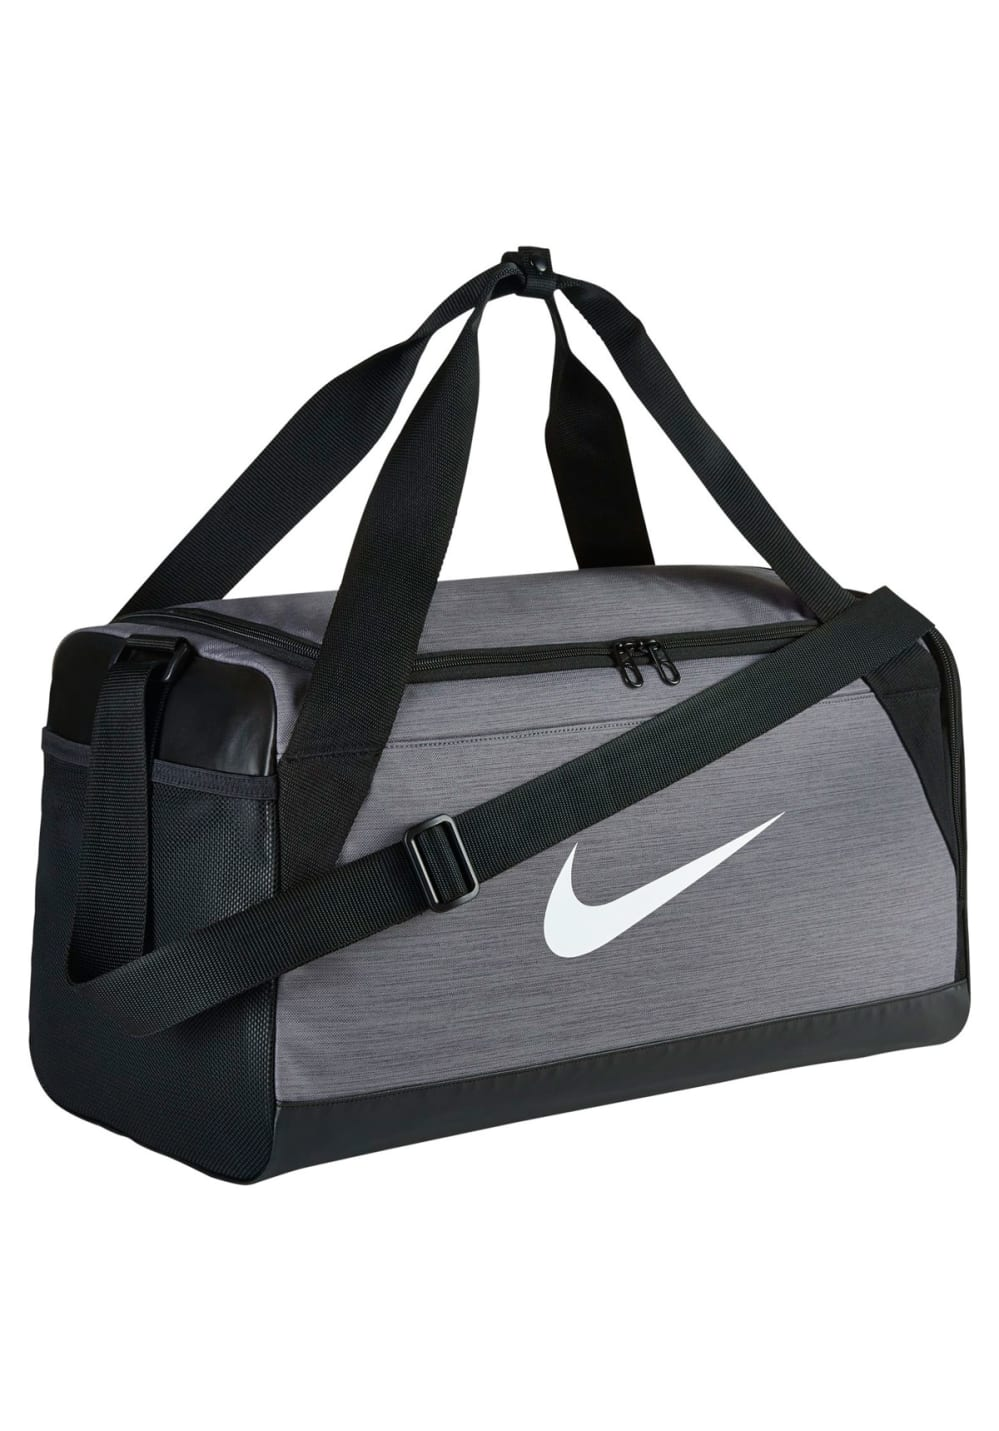 Next. -50%. This product is currently out of stock. Nike. Brasilia Small  Training Duffel Bag - Sports bags for Men d5c29eec09020